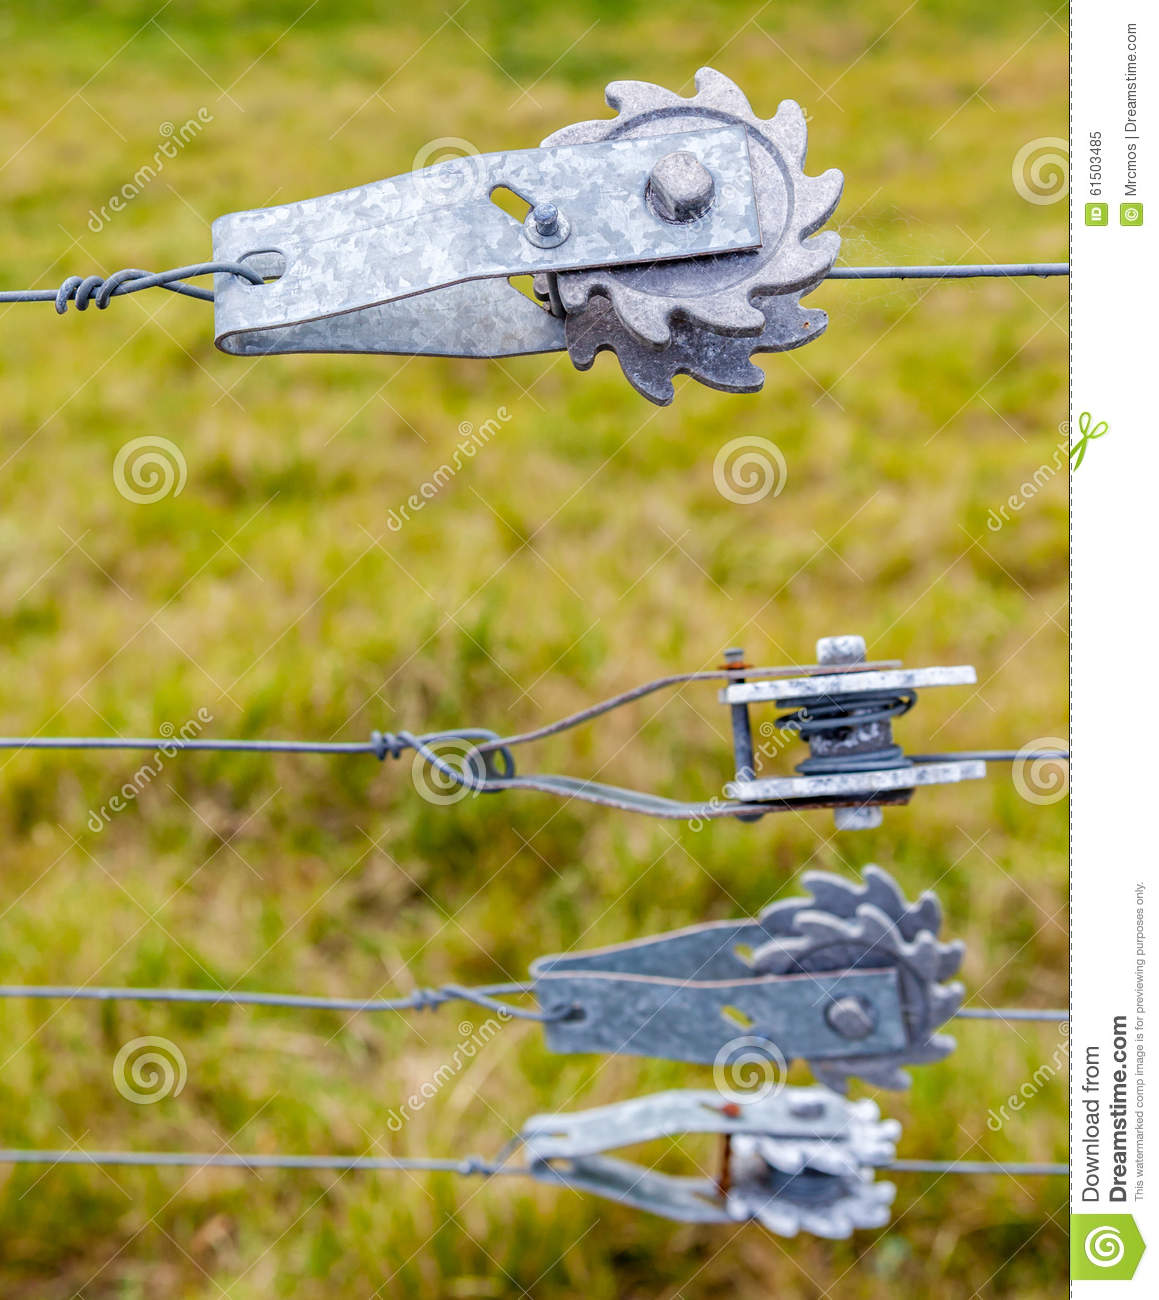 Ratchet Fence Tensioners For Tightening Wire Fences With Blurred ...